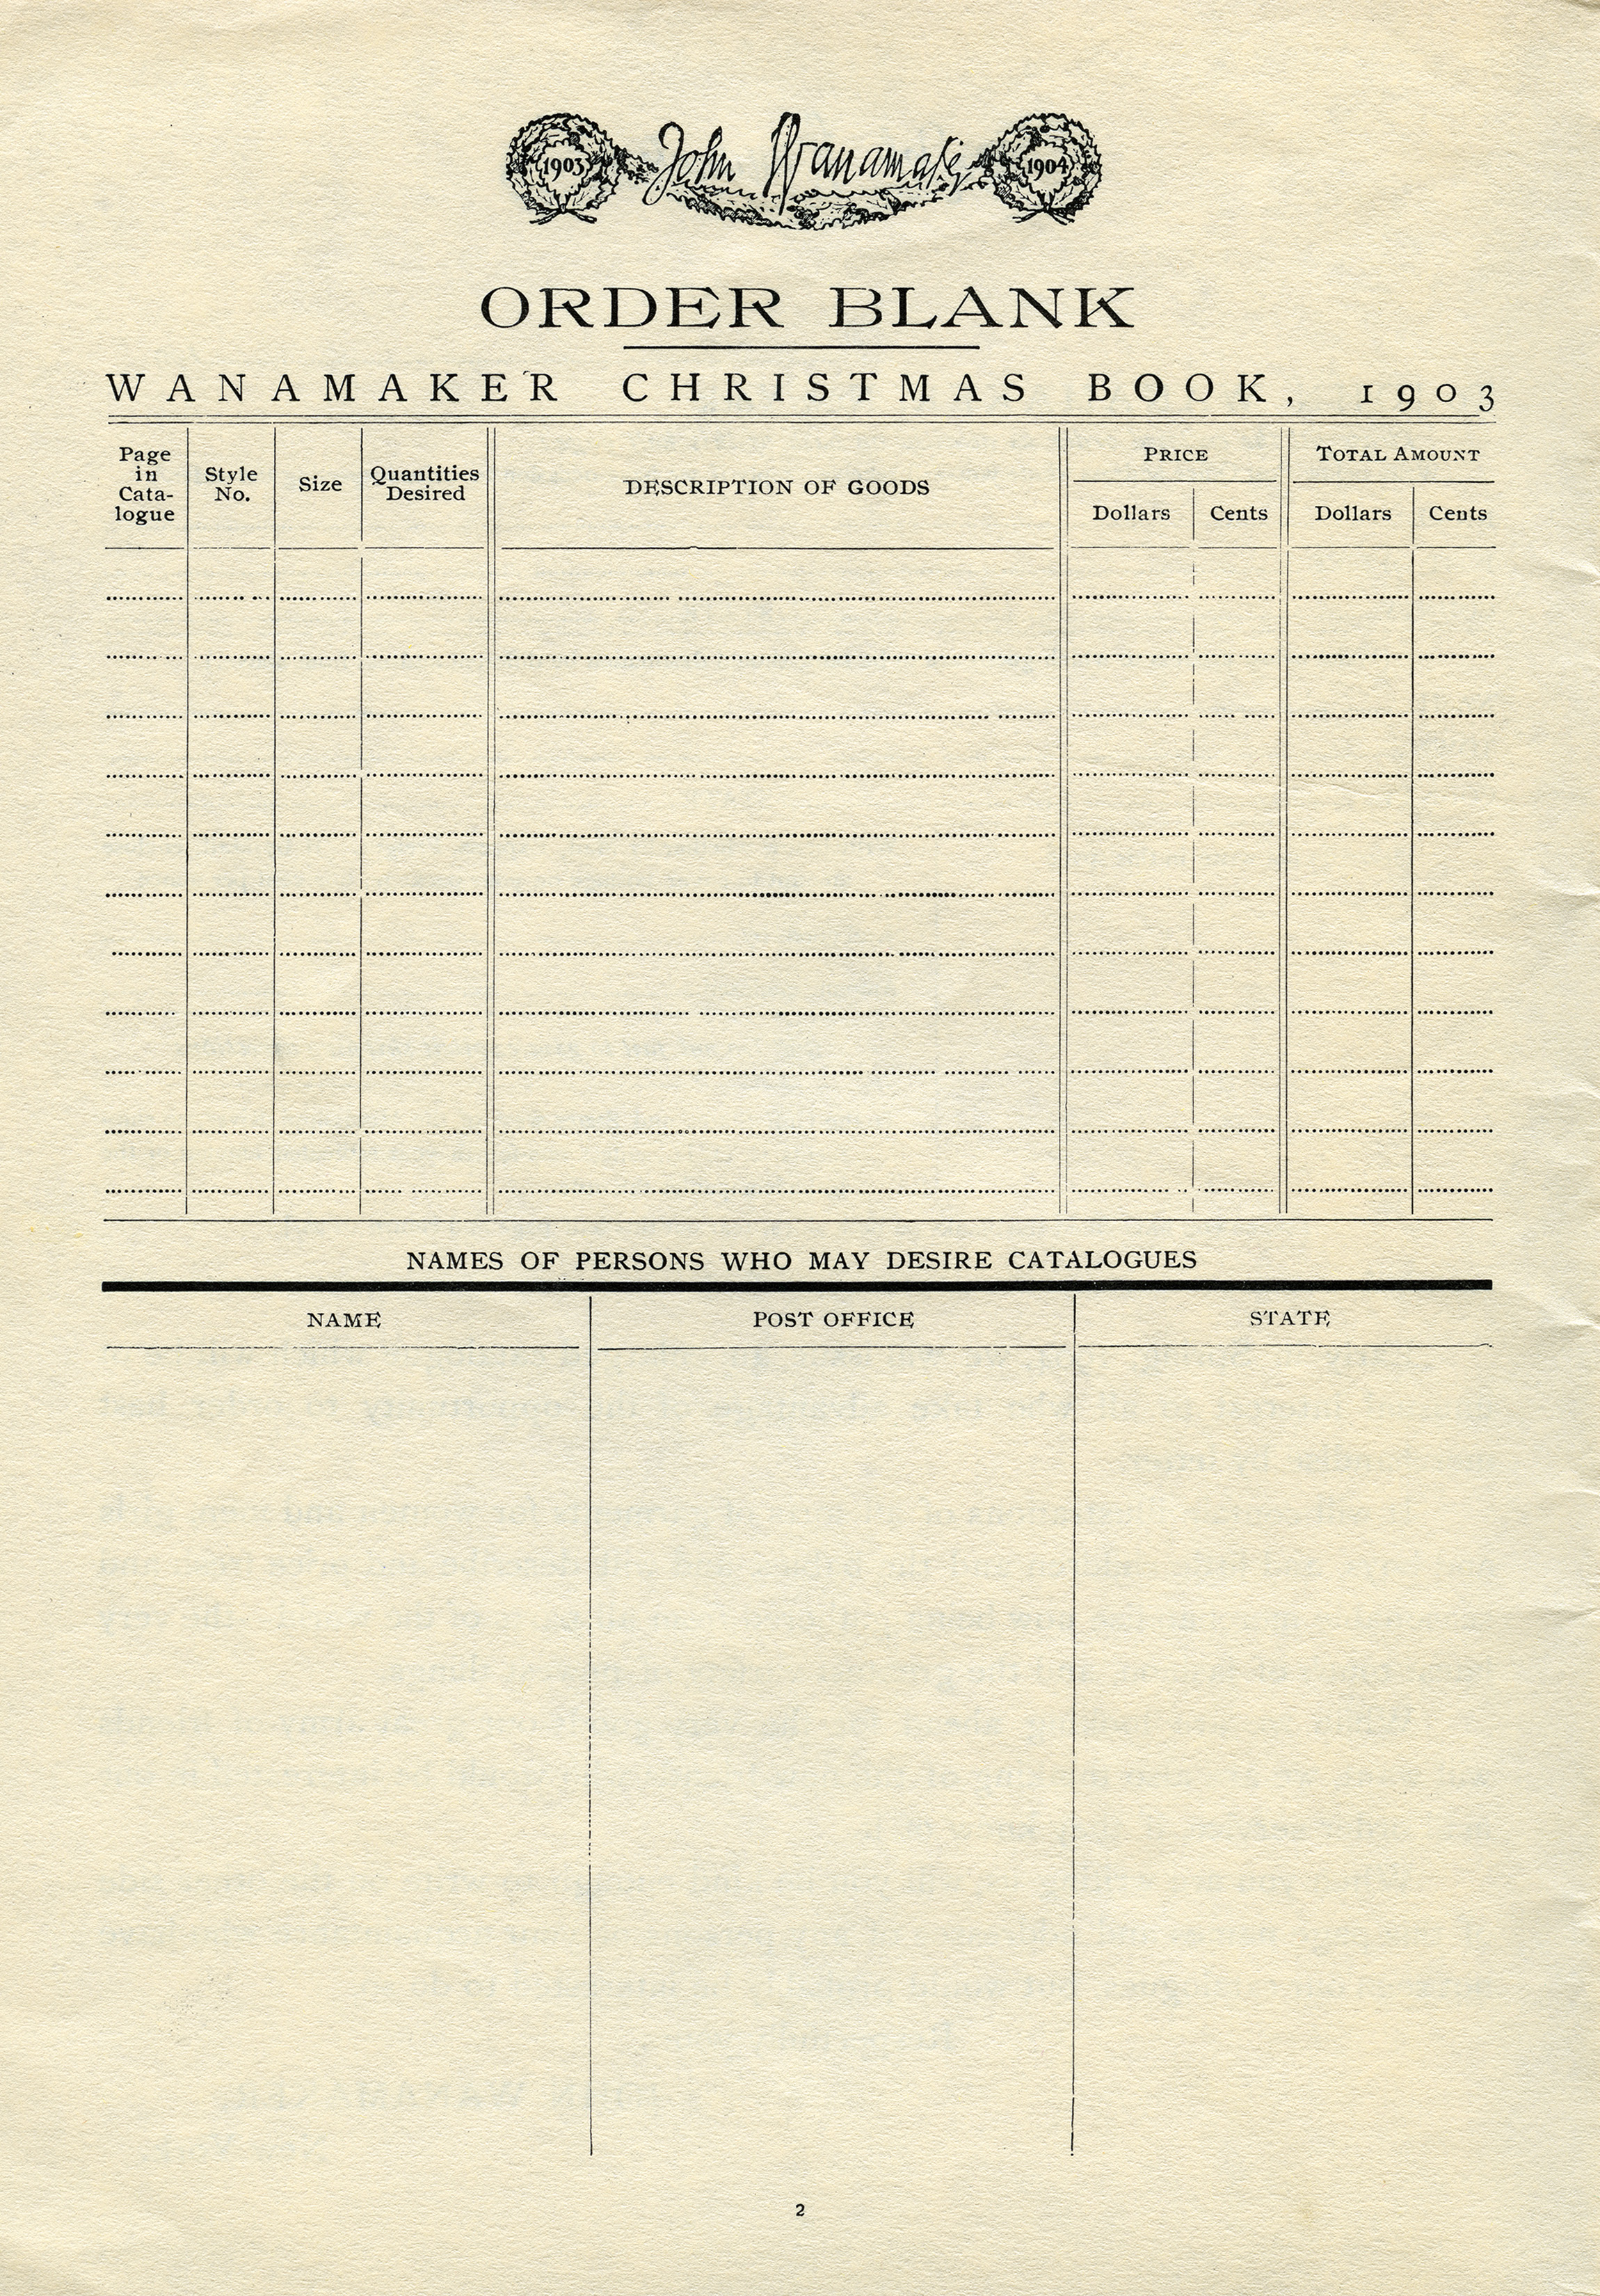 Christmas Order Form Free Vintage Graphics